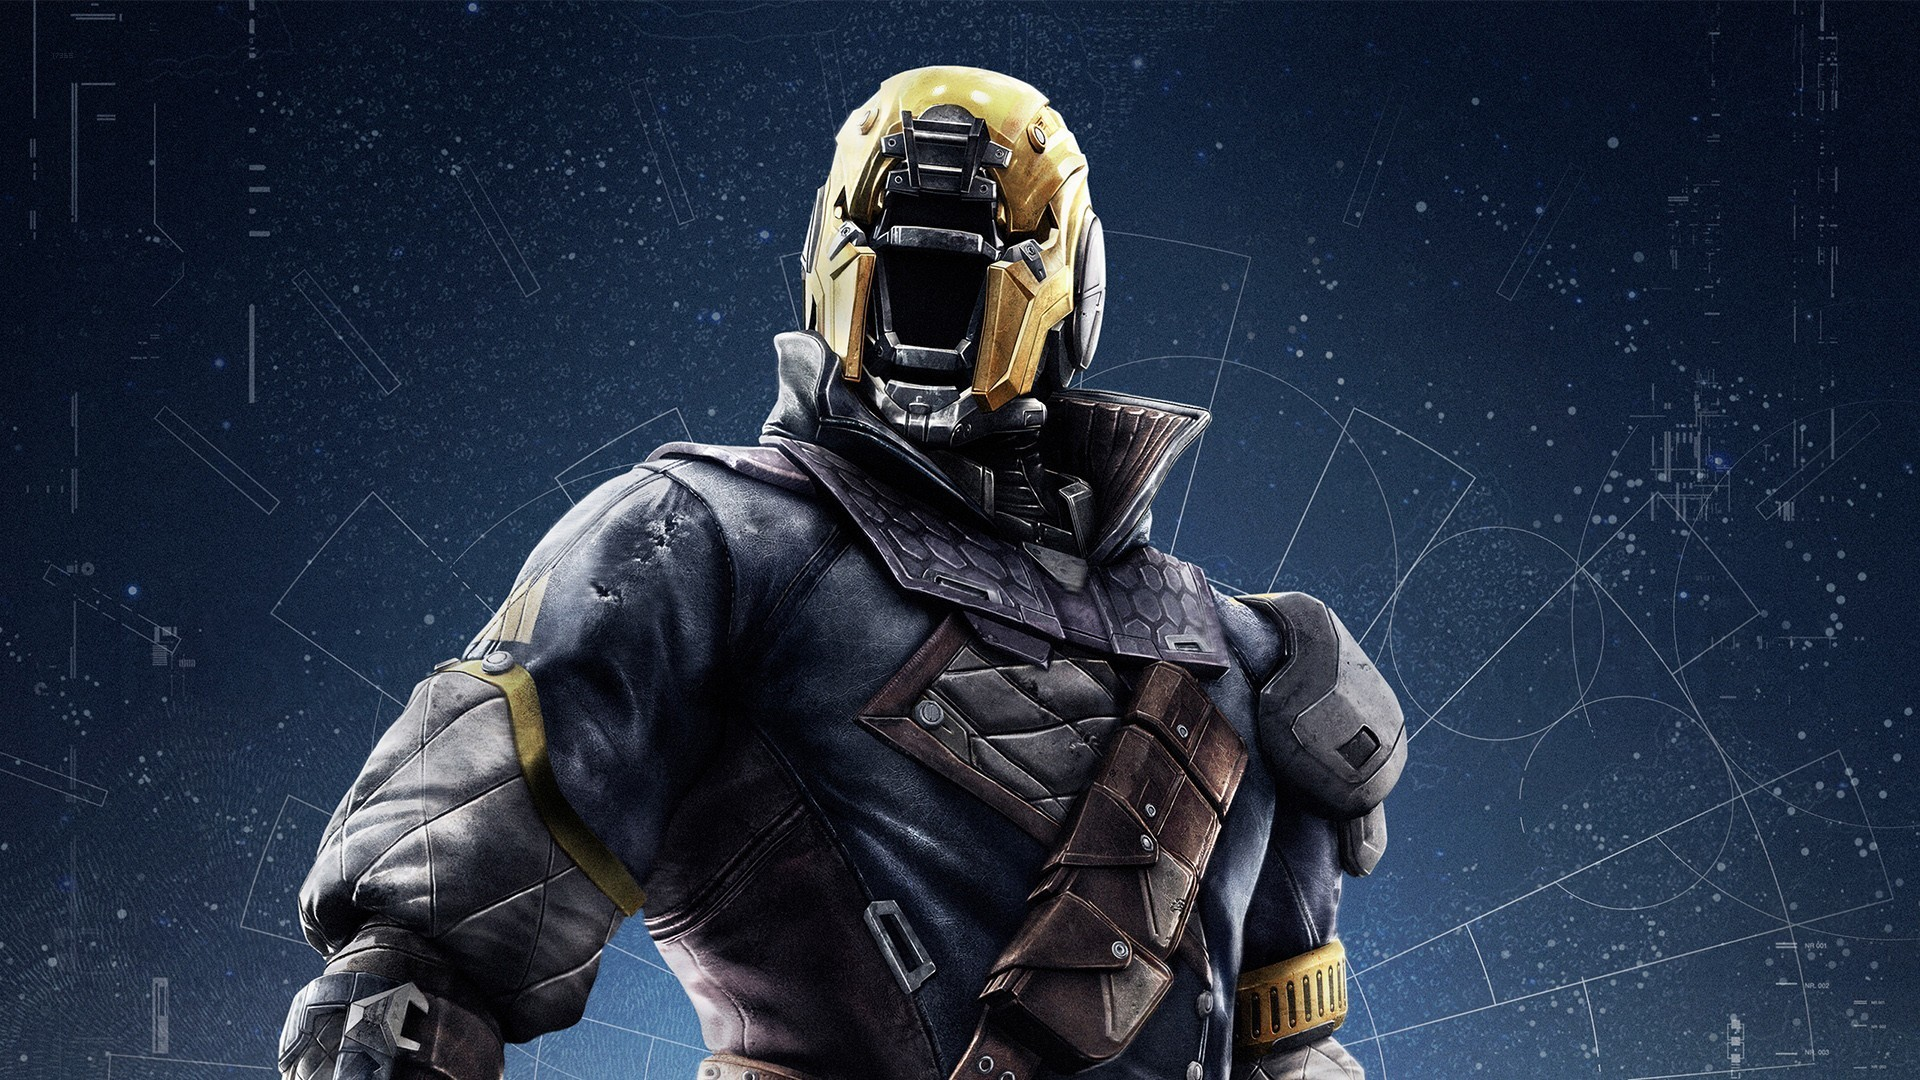 … destiny wallpapers hd desktop and mobile backgrounds …